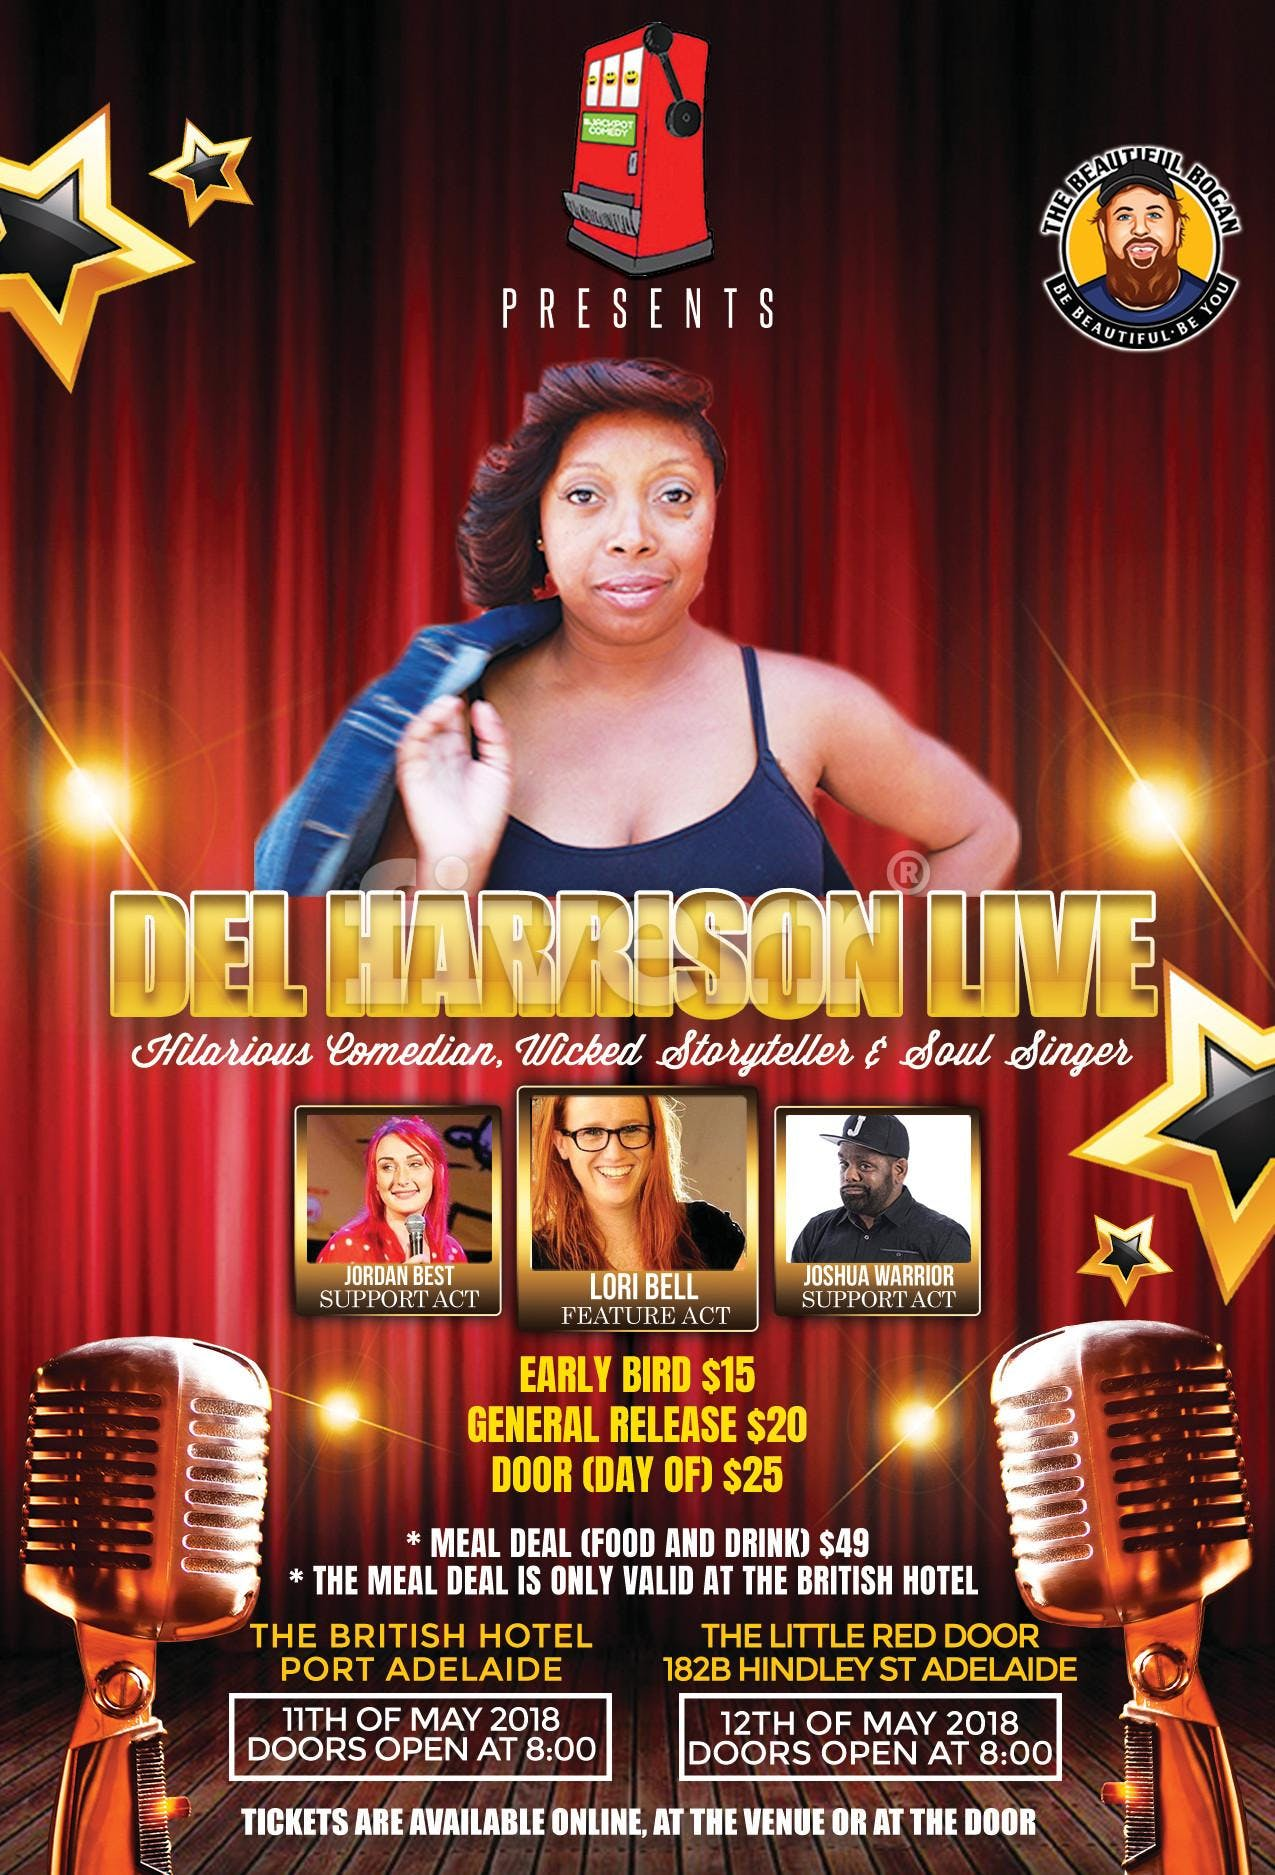 Del Harrison Live Standup Comedy Storytelling Sangin 12 May 2018